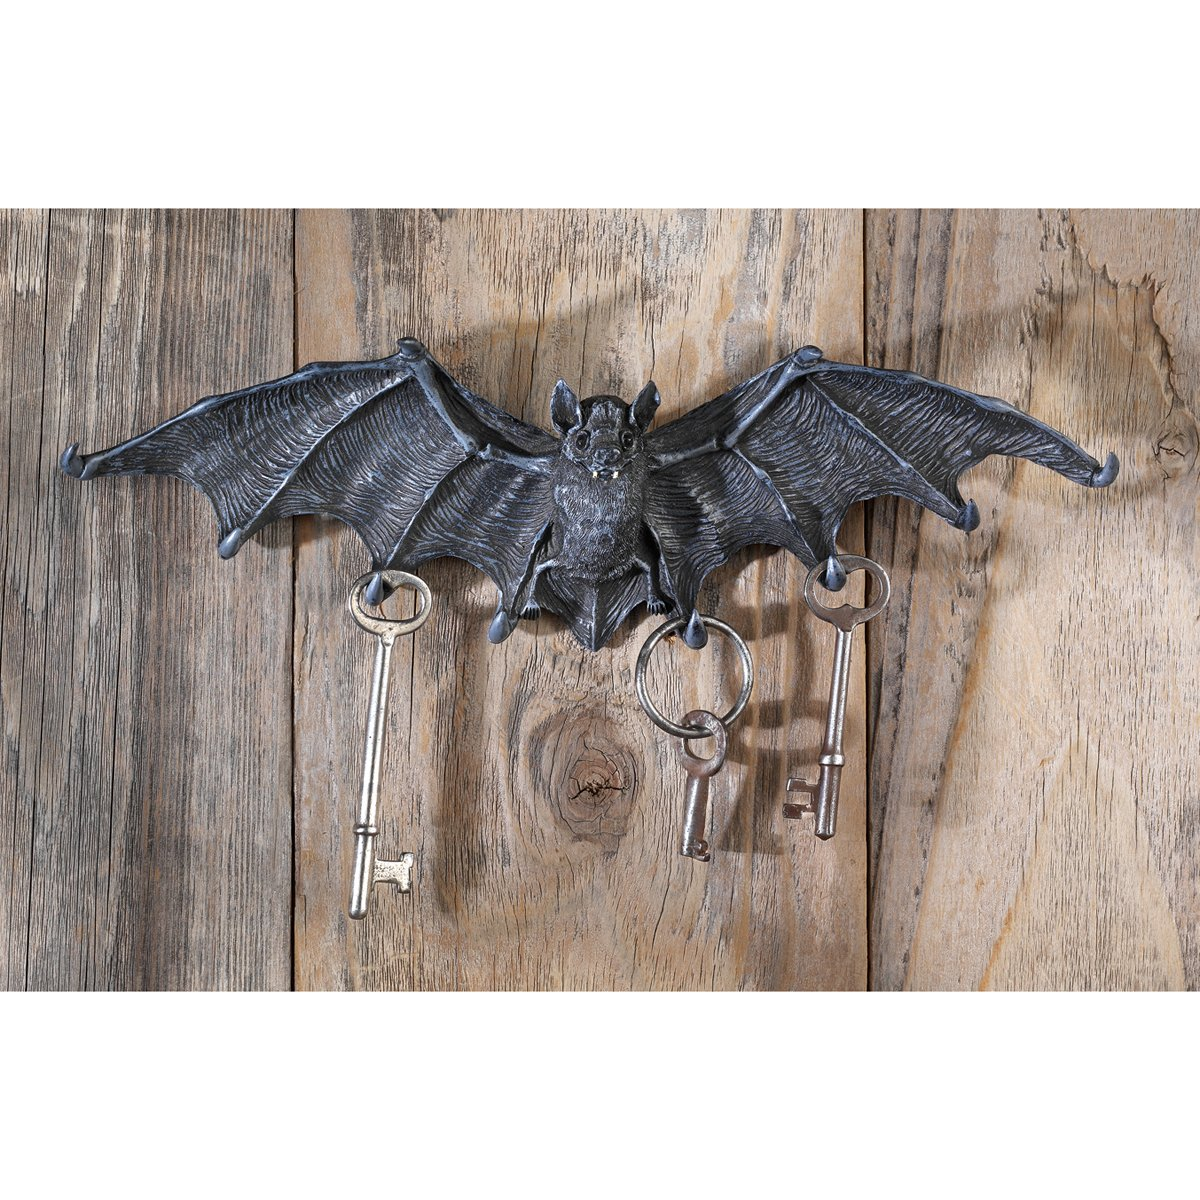 Keyholder job description free pdf download 10 top useful job design toscano vampire bat key holder wall sculpture amazoncouk kitchen home madrichimfo Gallery